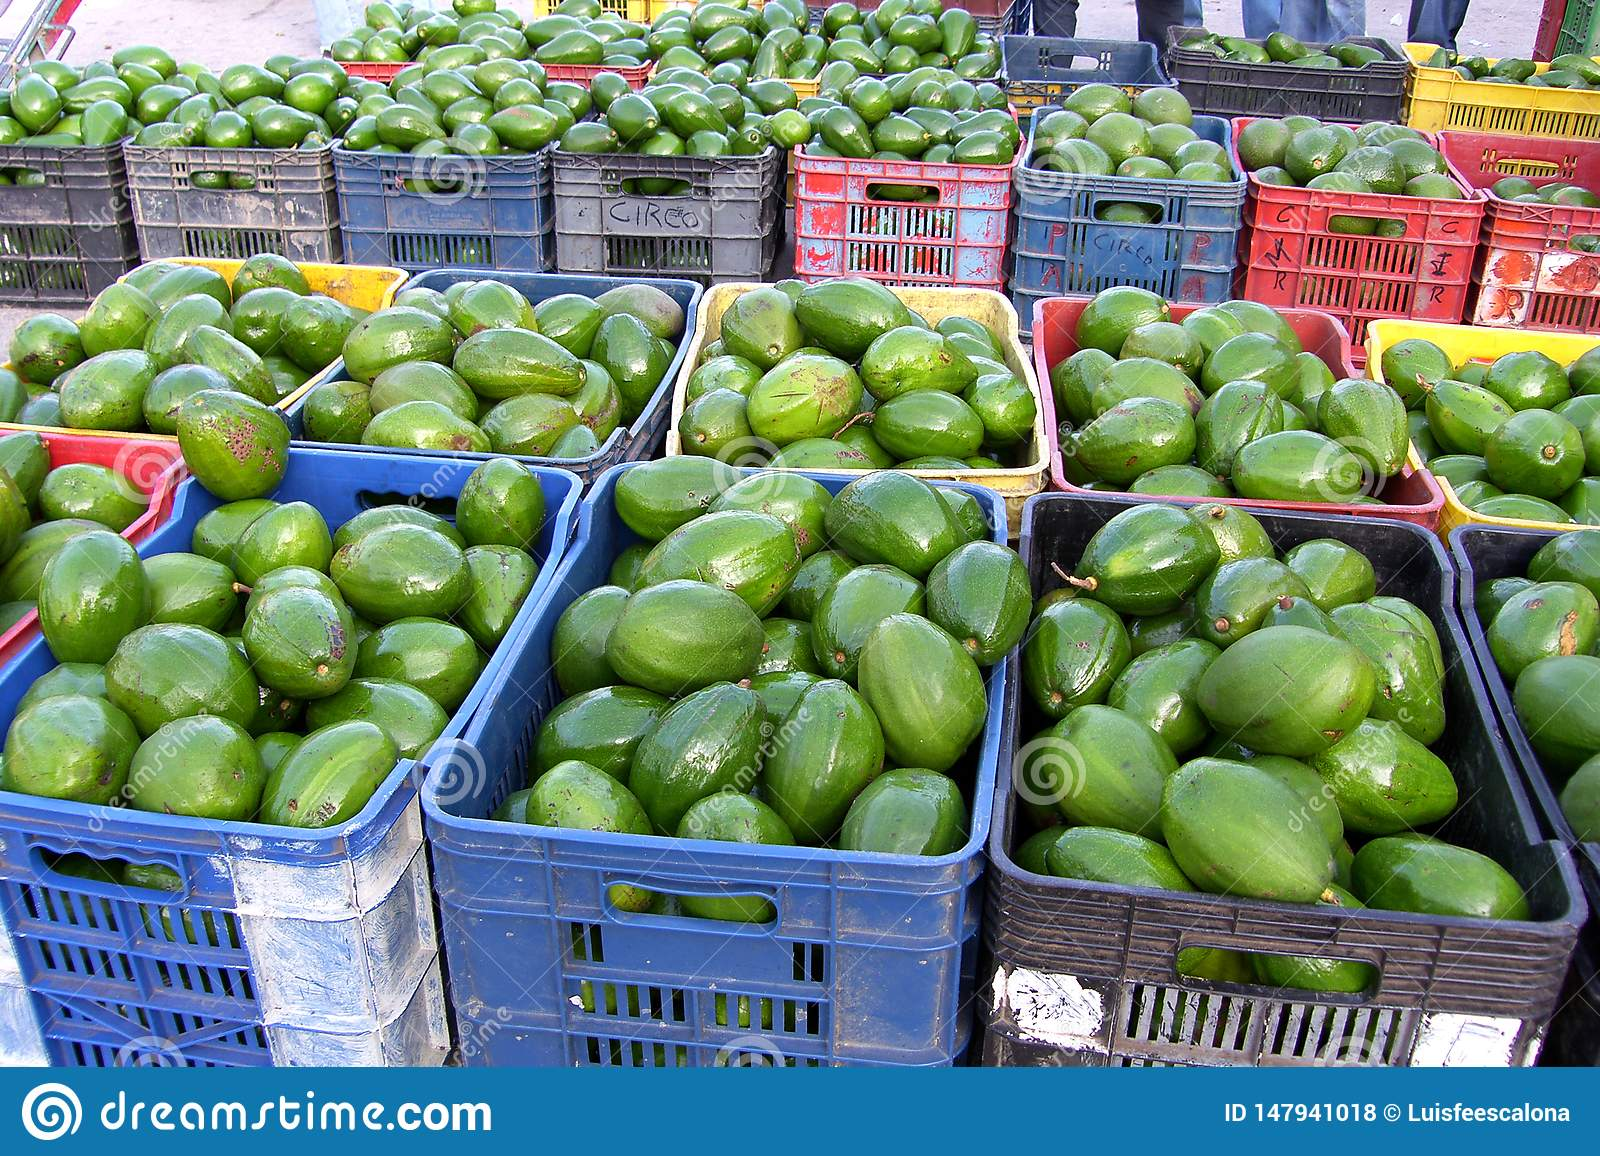 Avocados in the market